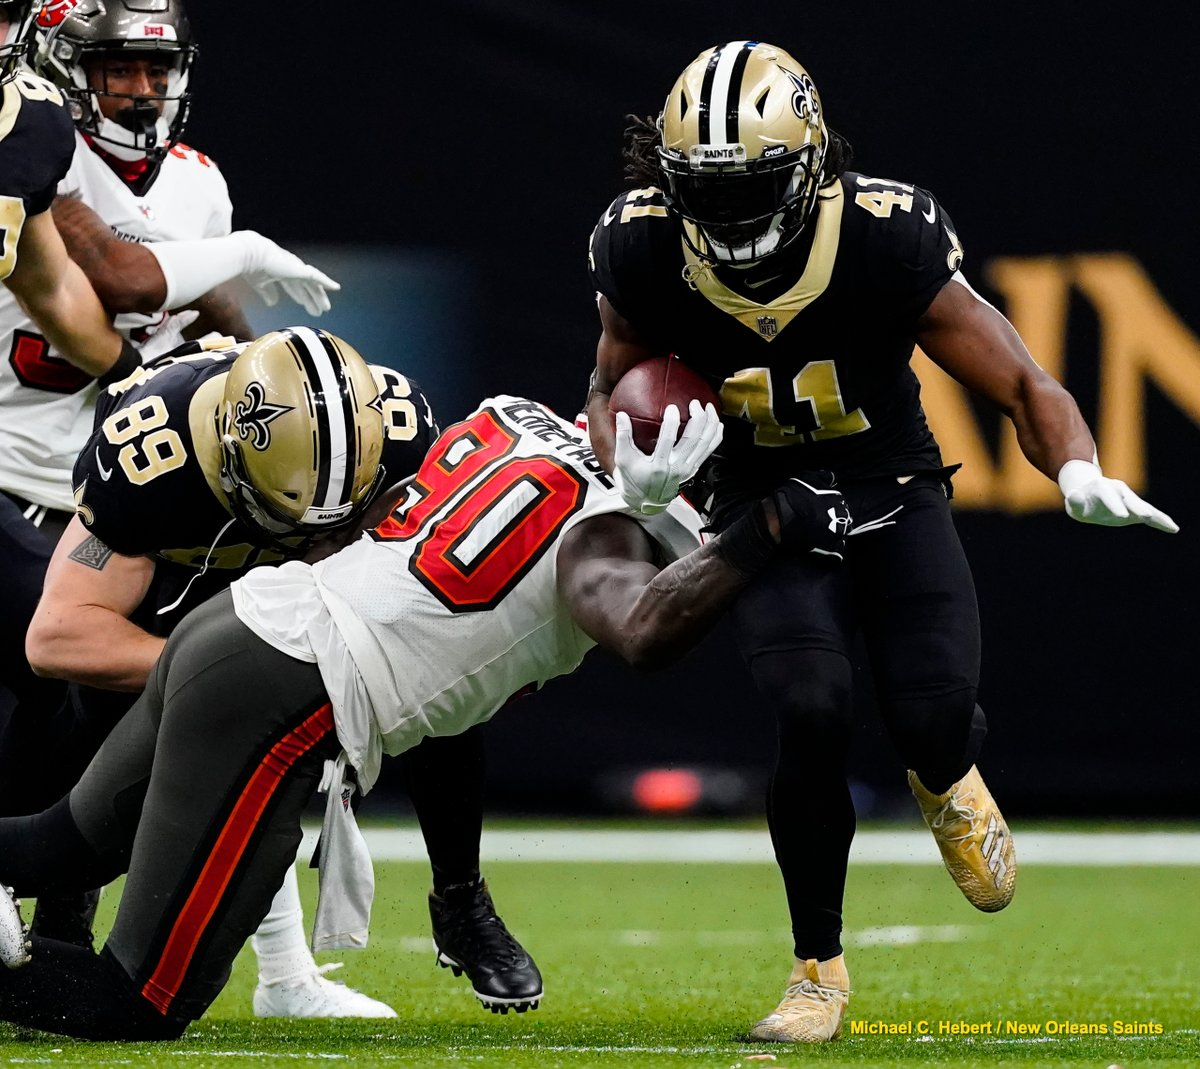 ESPN's @MikeTriplett joins @JohnDeShazier & @carolinegonzo34 to recap the #Saints divisional round loss to Tampa Bay and talk about what's next 🎙 @SeatGeek   RECAP »